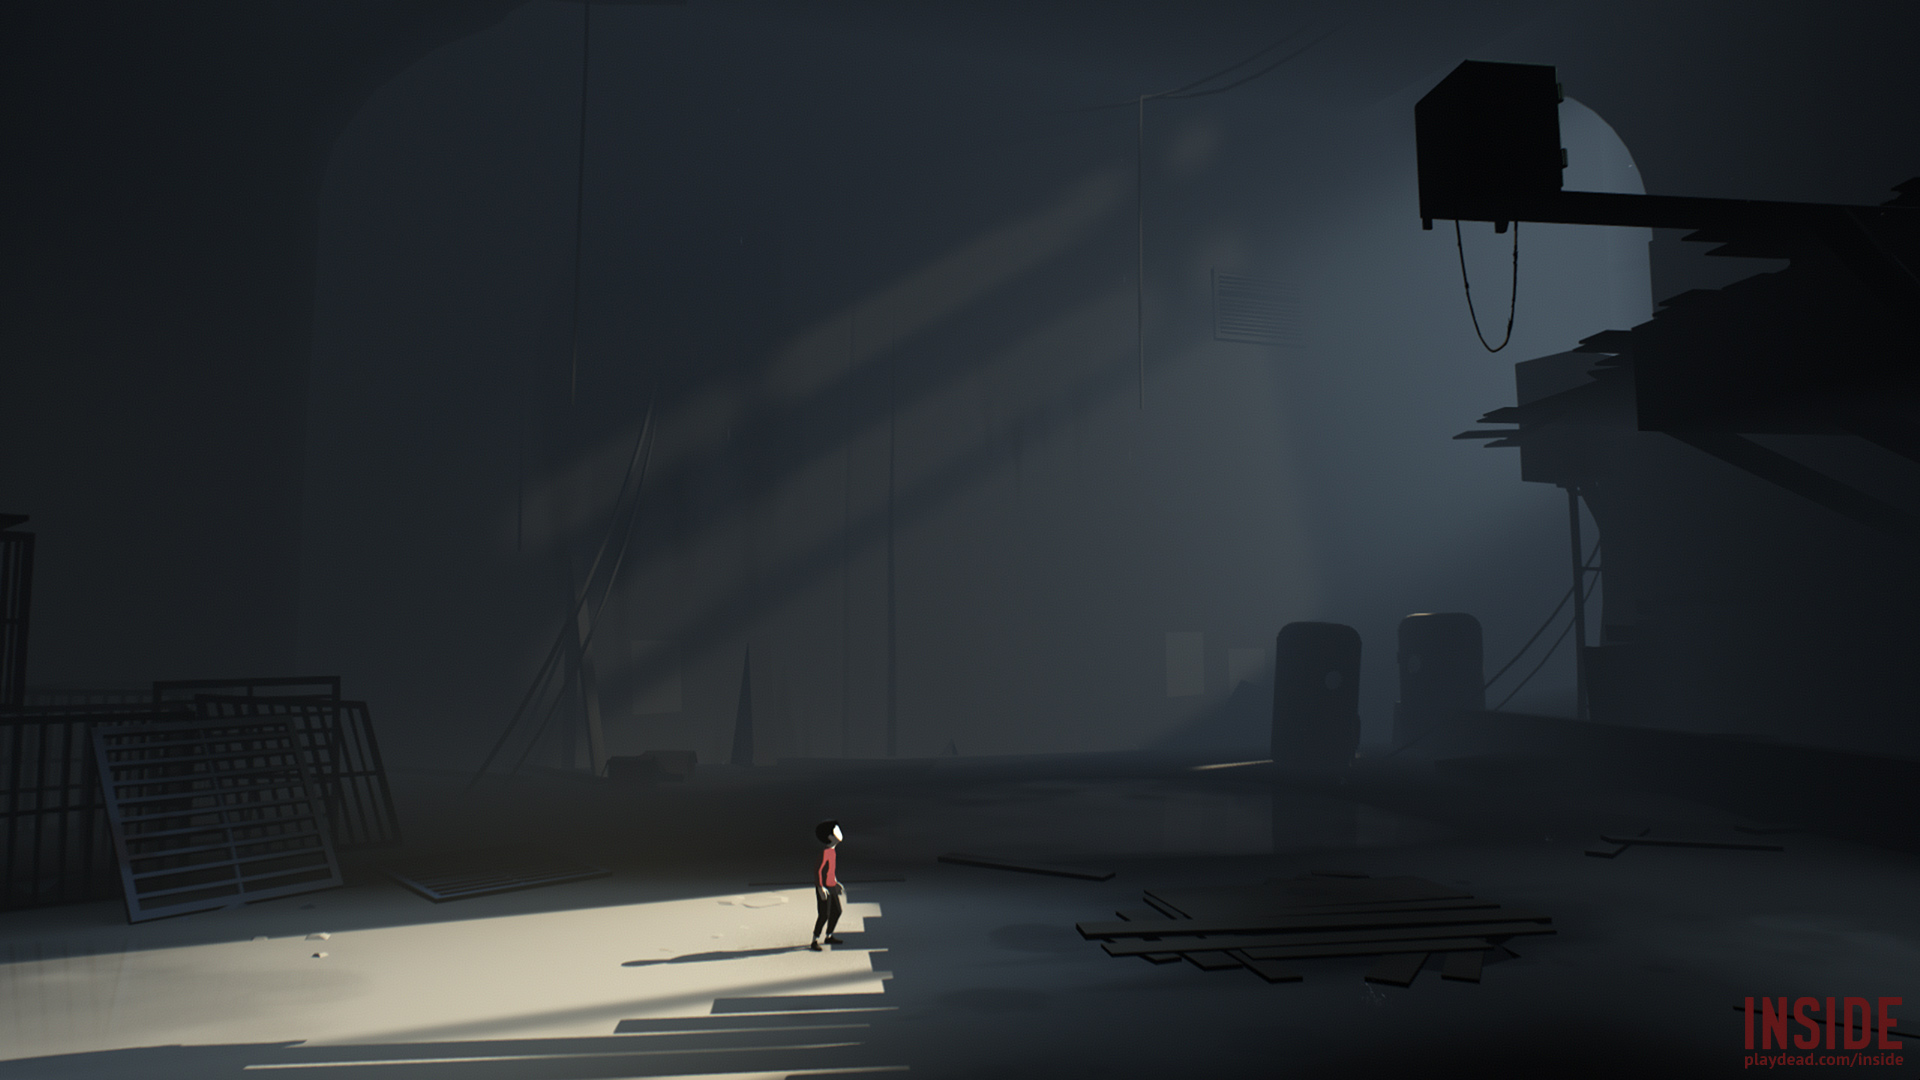 http://playdead.com/css/img/inside/screenshots/INSIDE_01.jpg</a></em>